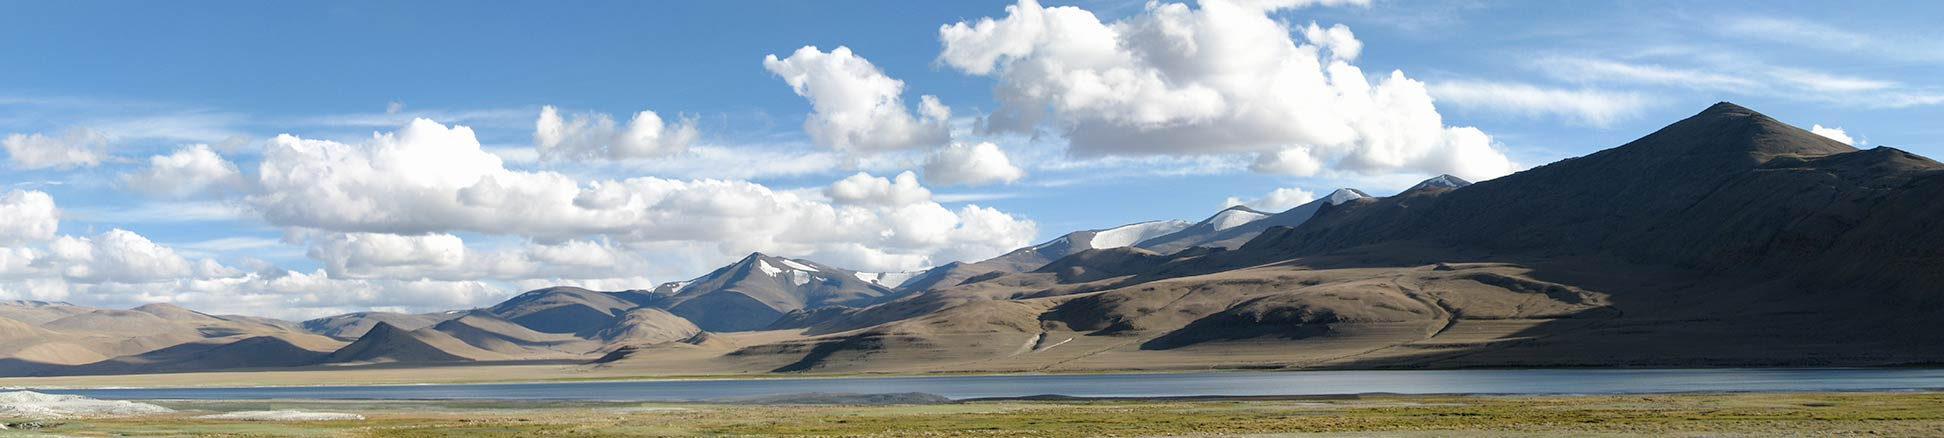 Panorama of Tso Kar lake in Ladakh